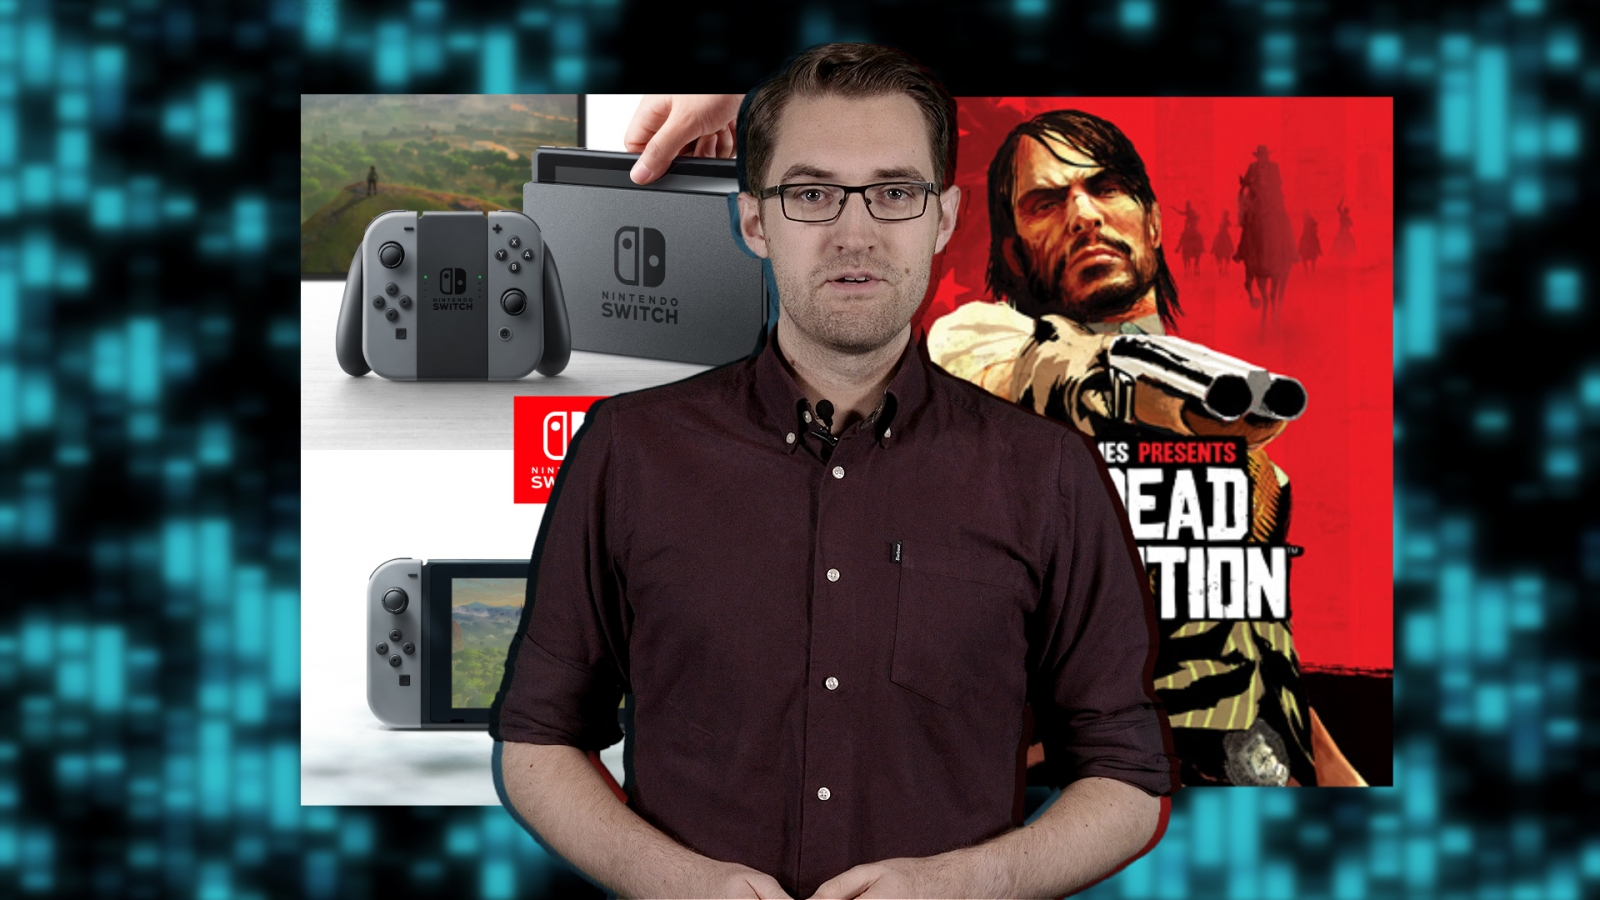 Video game news round-up